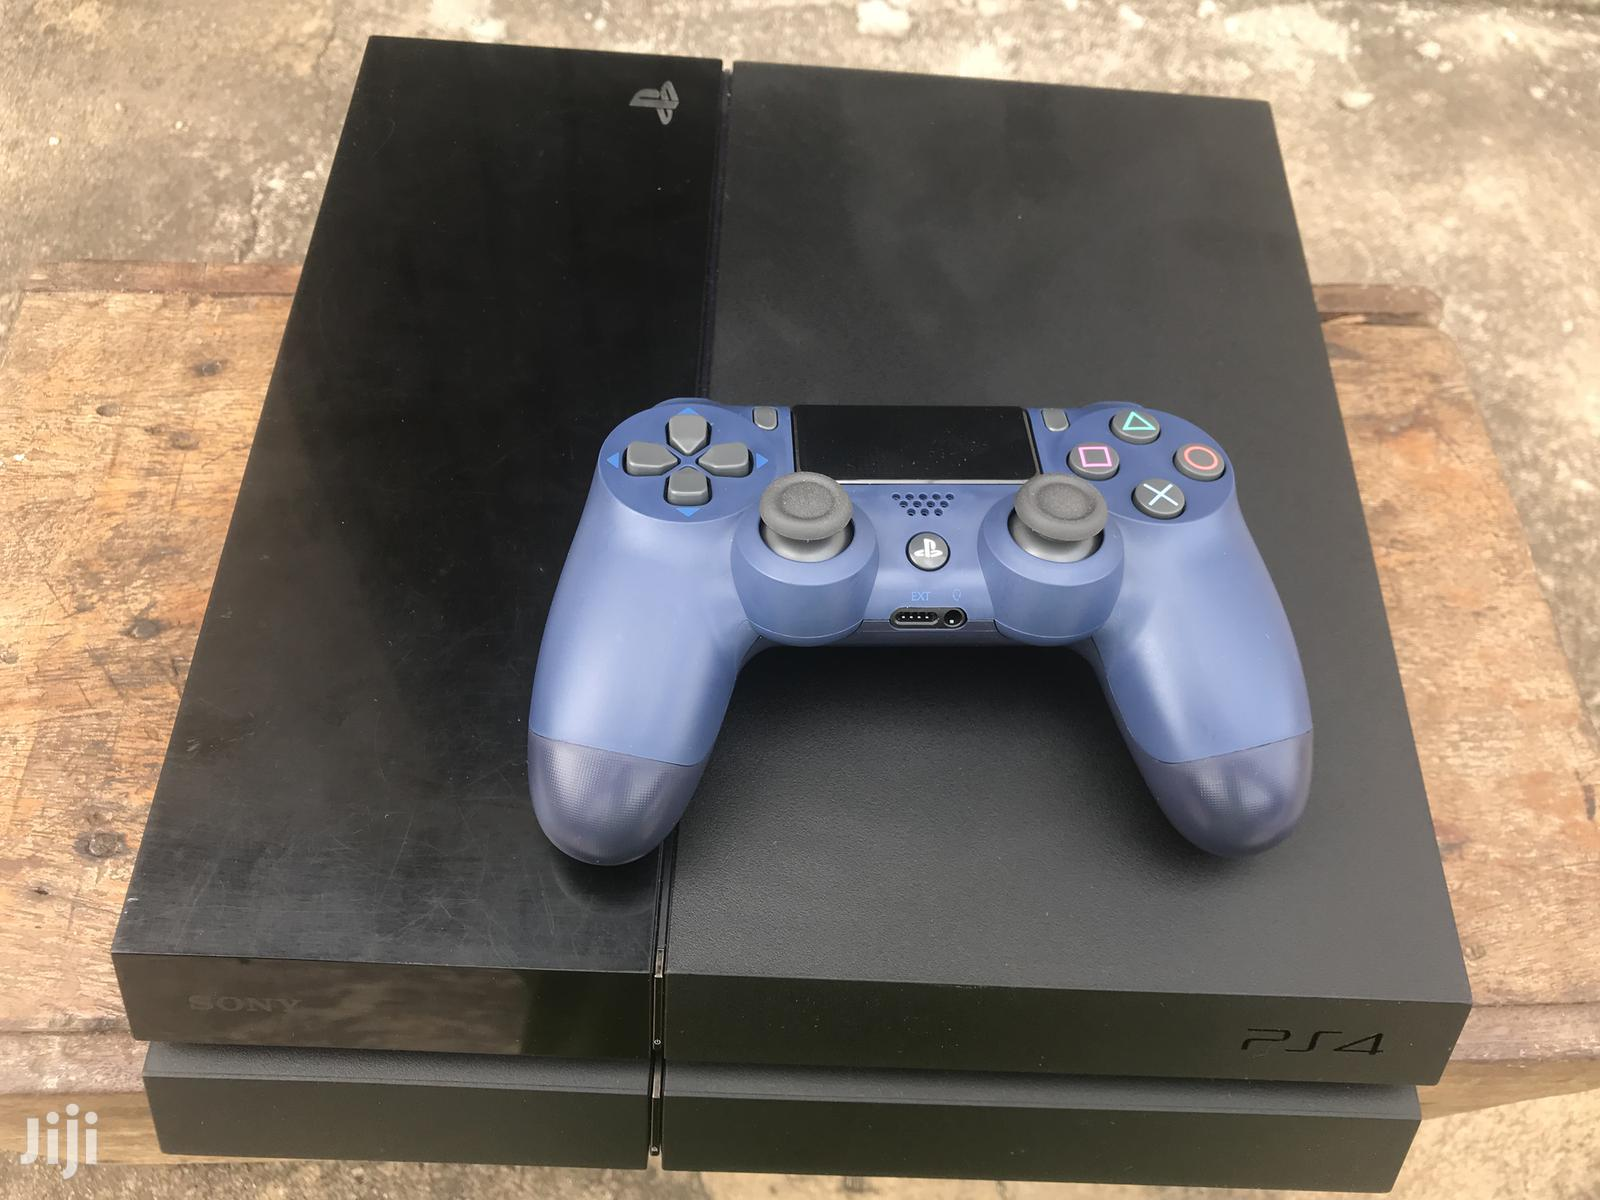 Archive: A Neat PS4 With Games